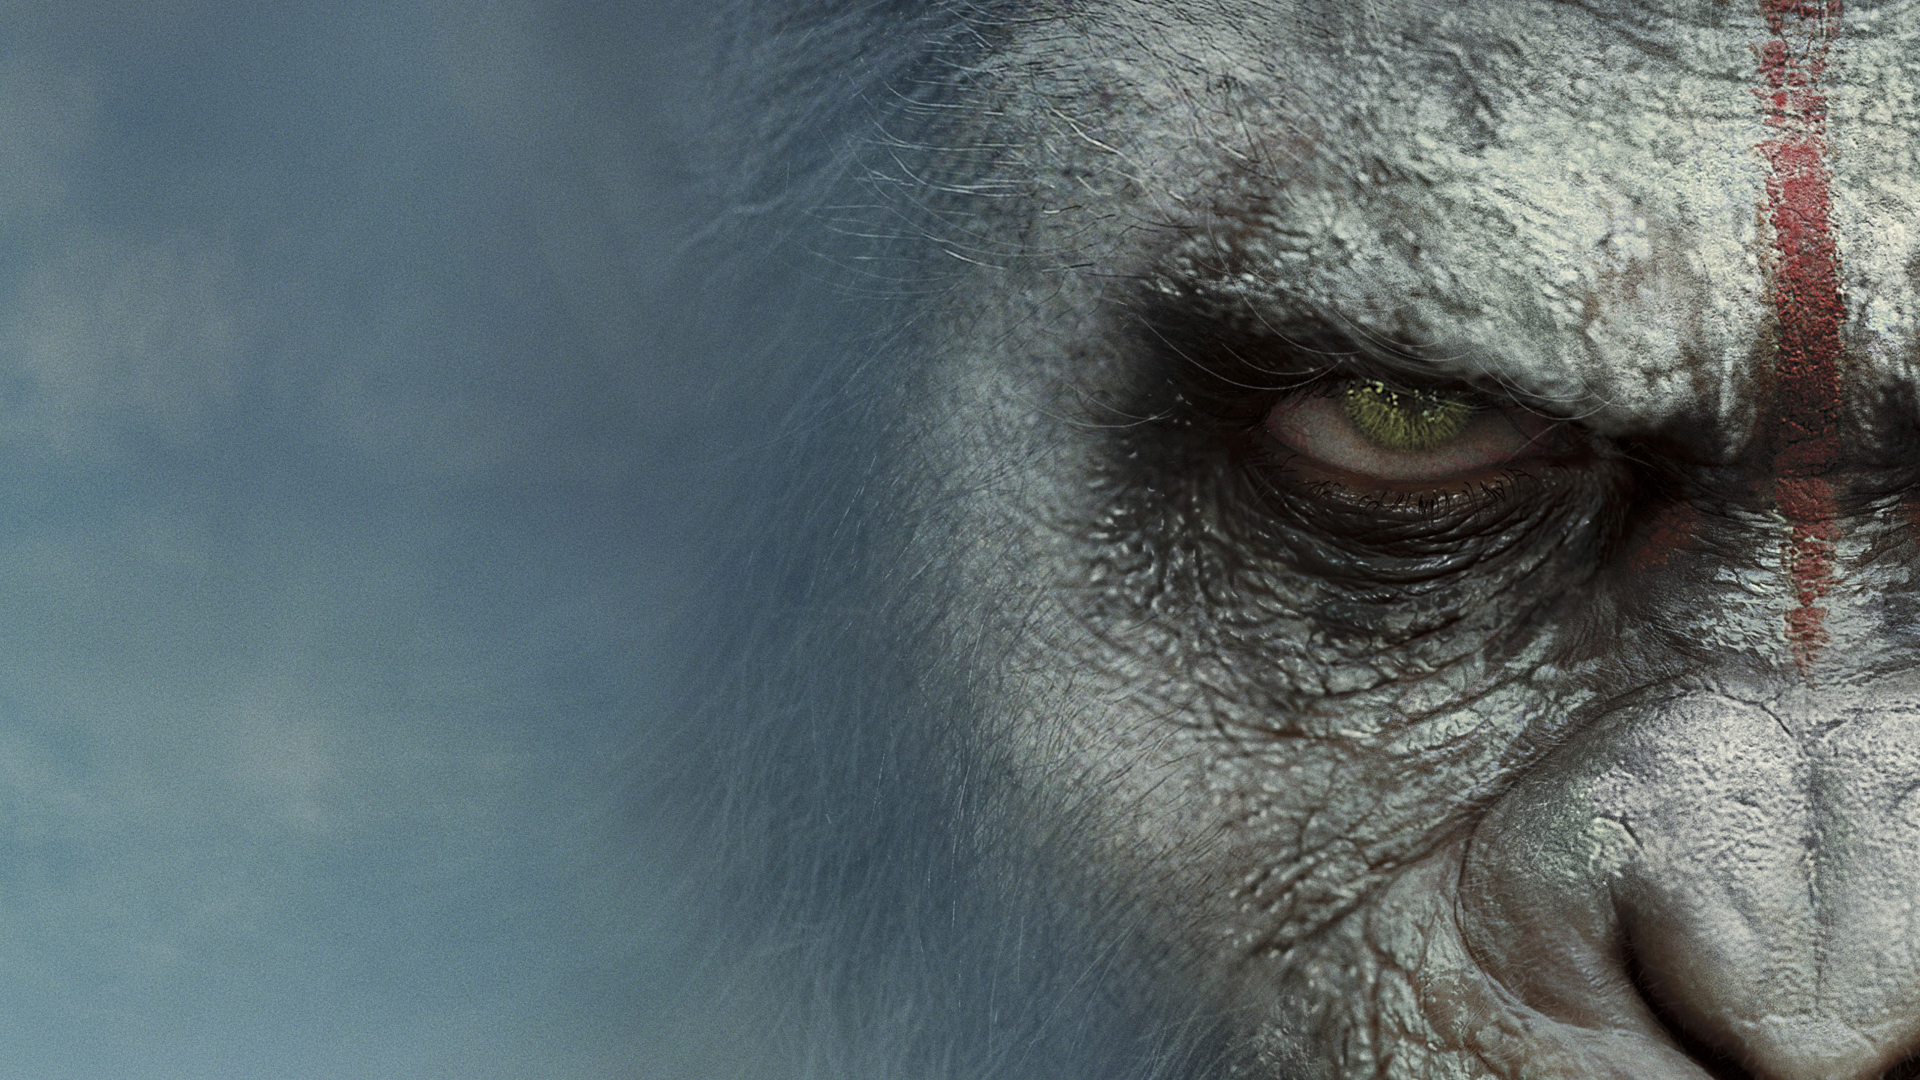 Caesar Dawn of the Planet of the Apes Wallpaper HD